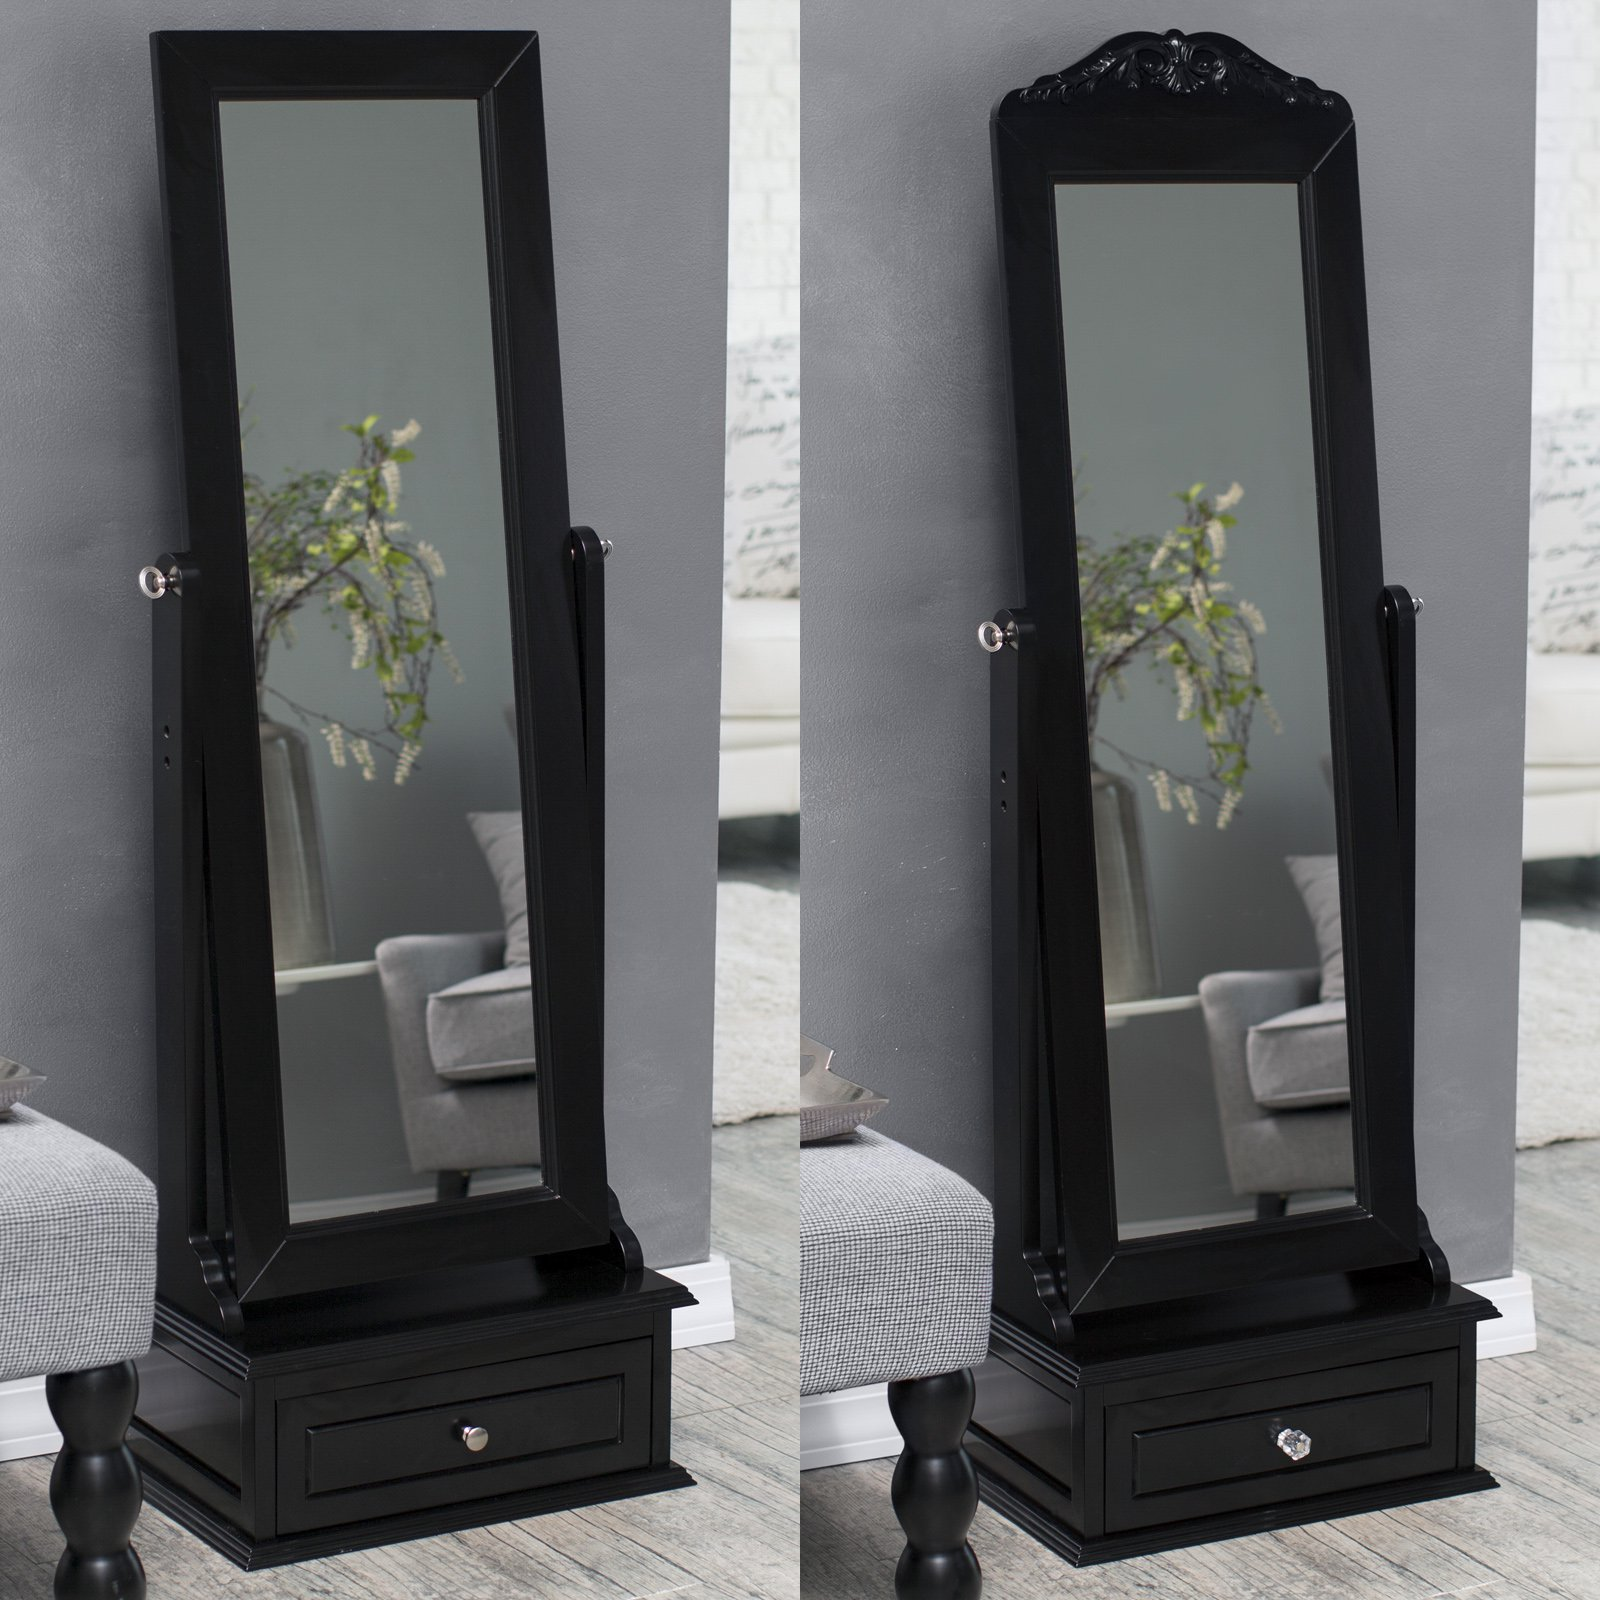 Belham Living Removable Decorative Top Cheval Mirror - Black - 21.5W x 60H in.